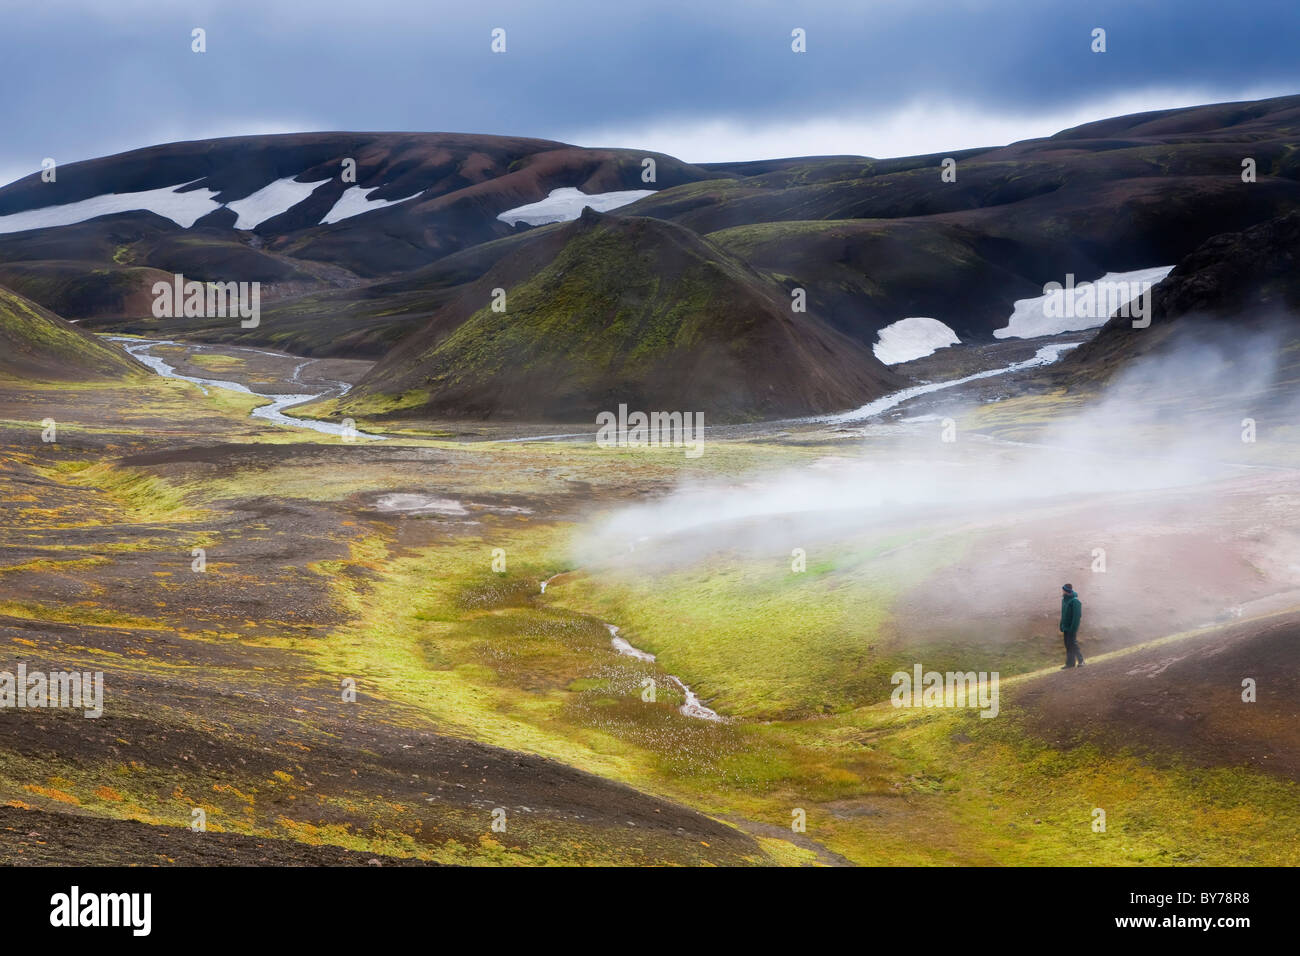 Steam vents, Rhiolite Mountains, Landmannalaugar, Iceland - Stock Image